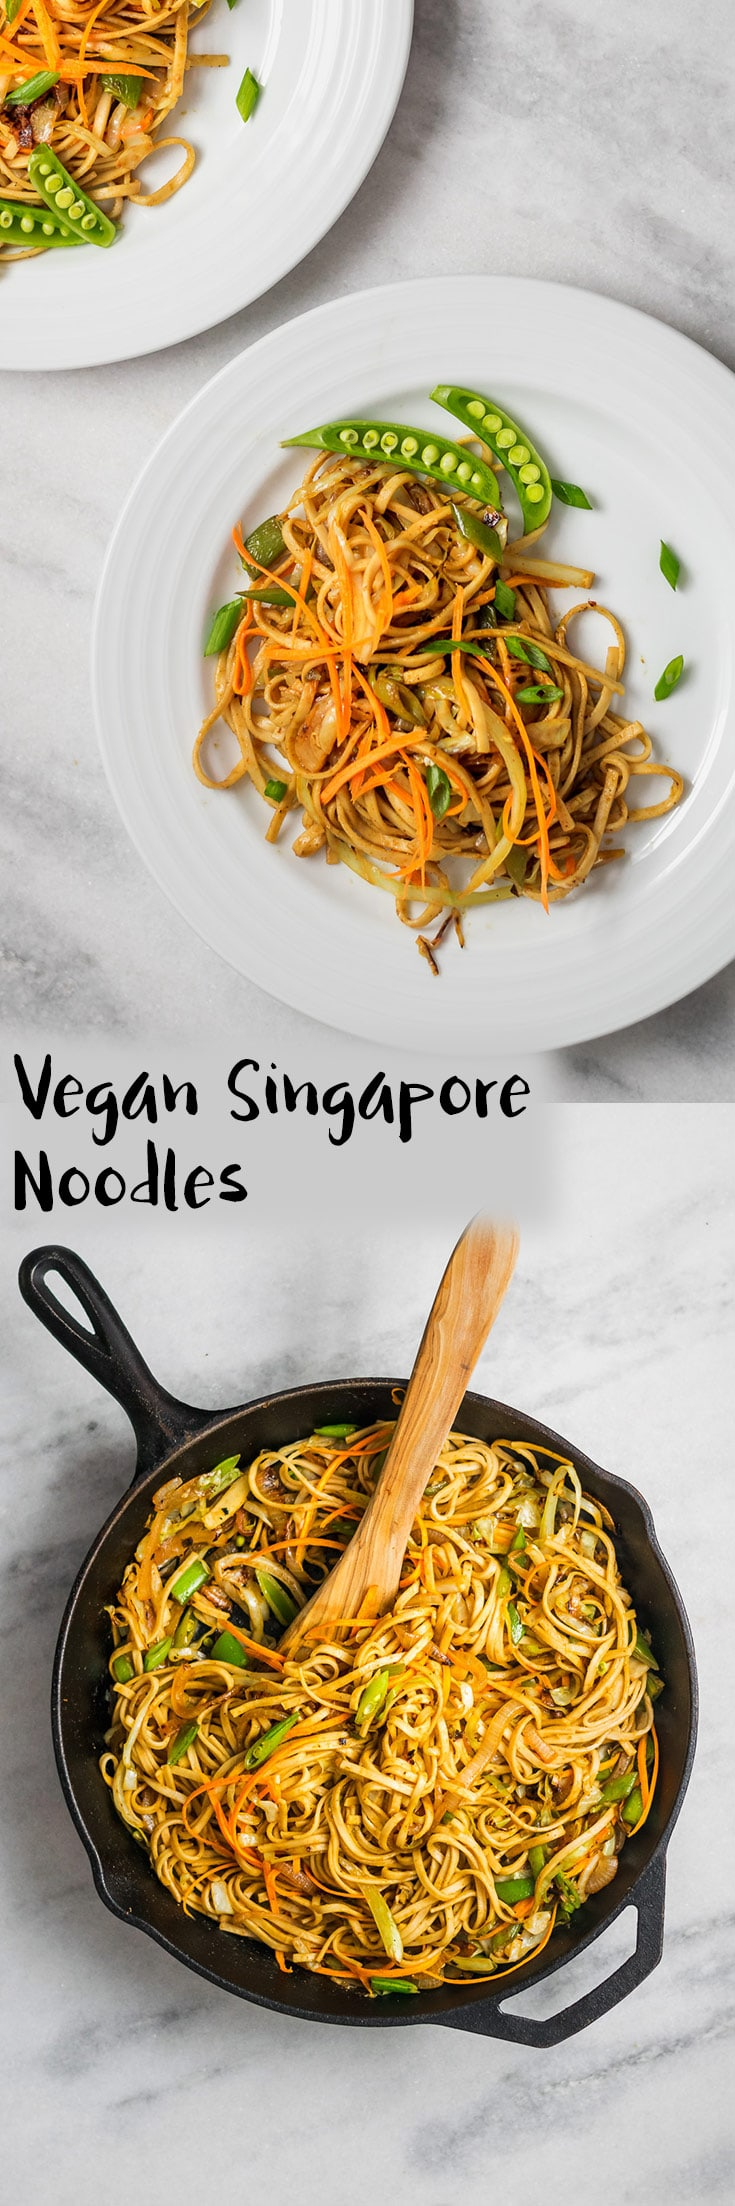 A vegan adaptation of Singapore noodles, a popular cantonese dish. This recipe is ready in just 30 minutes and is so versatile and you can change the vegetables to what you have in your produce drawer!   thecuriouschickpea.com